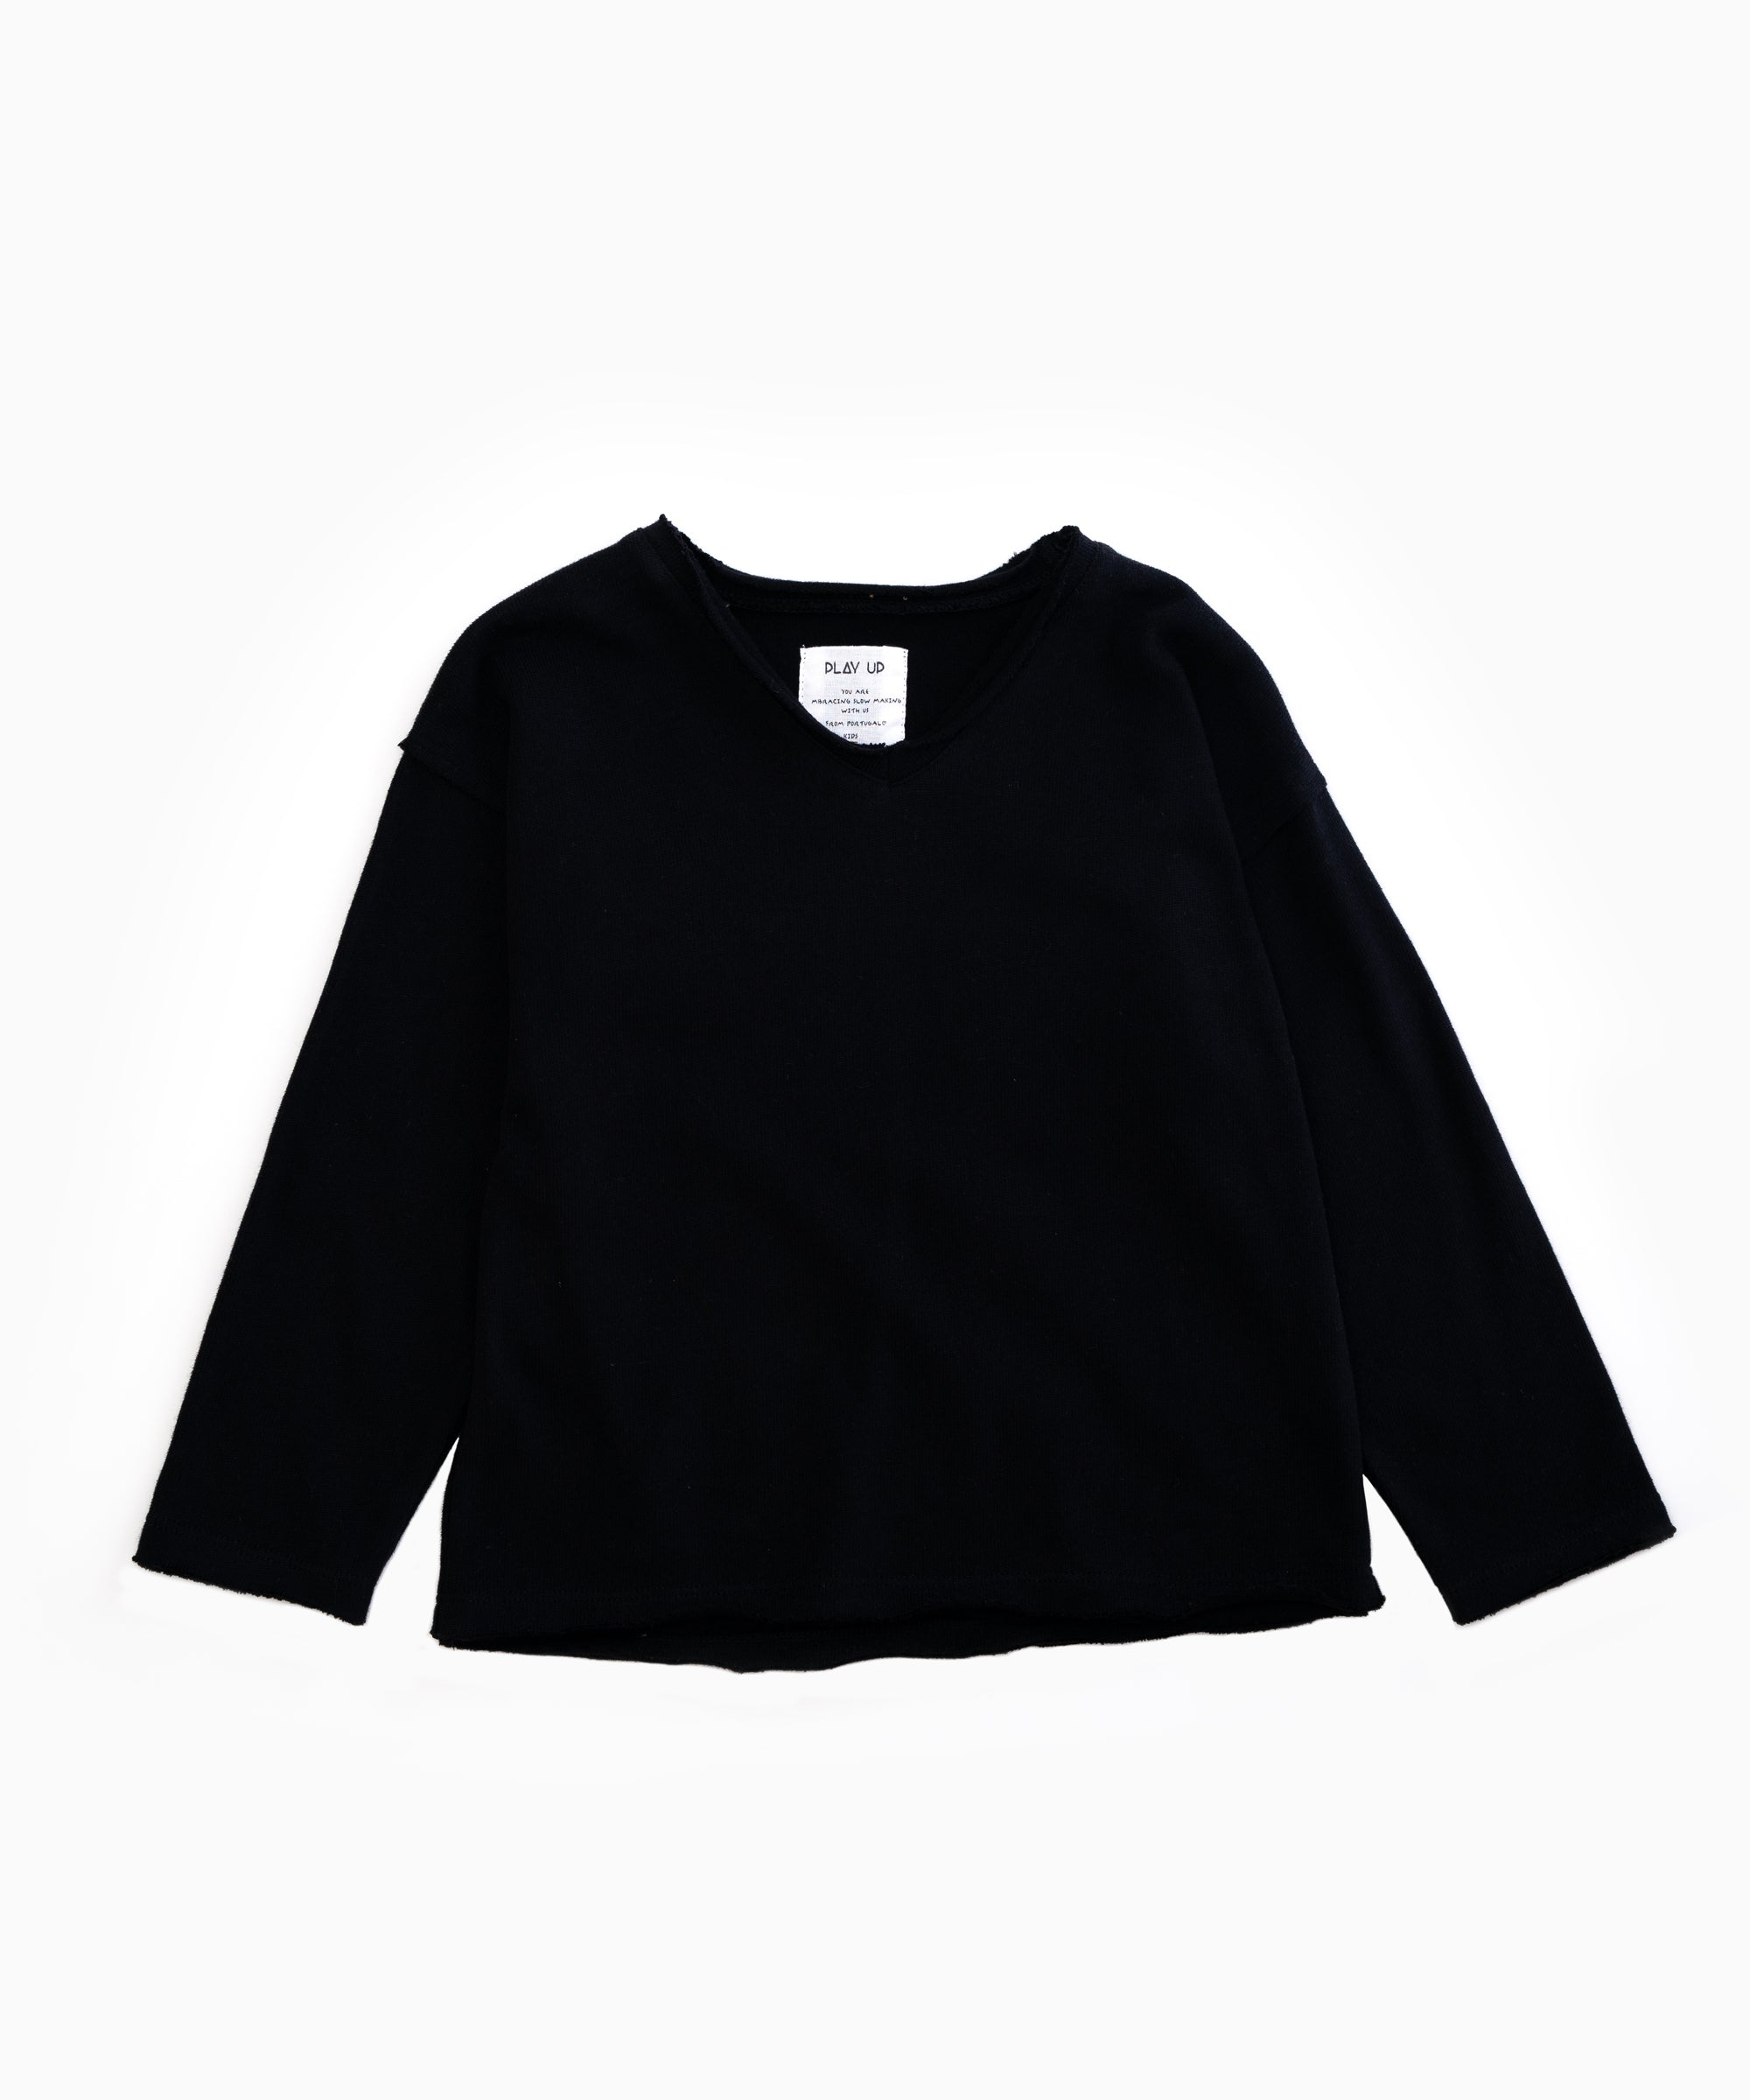 PLAY-UP / Jersey sweater